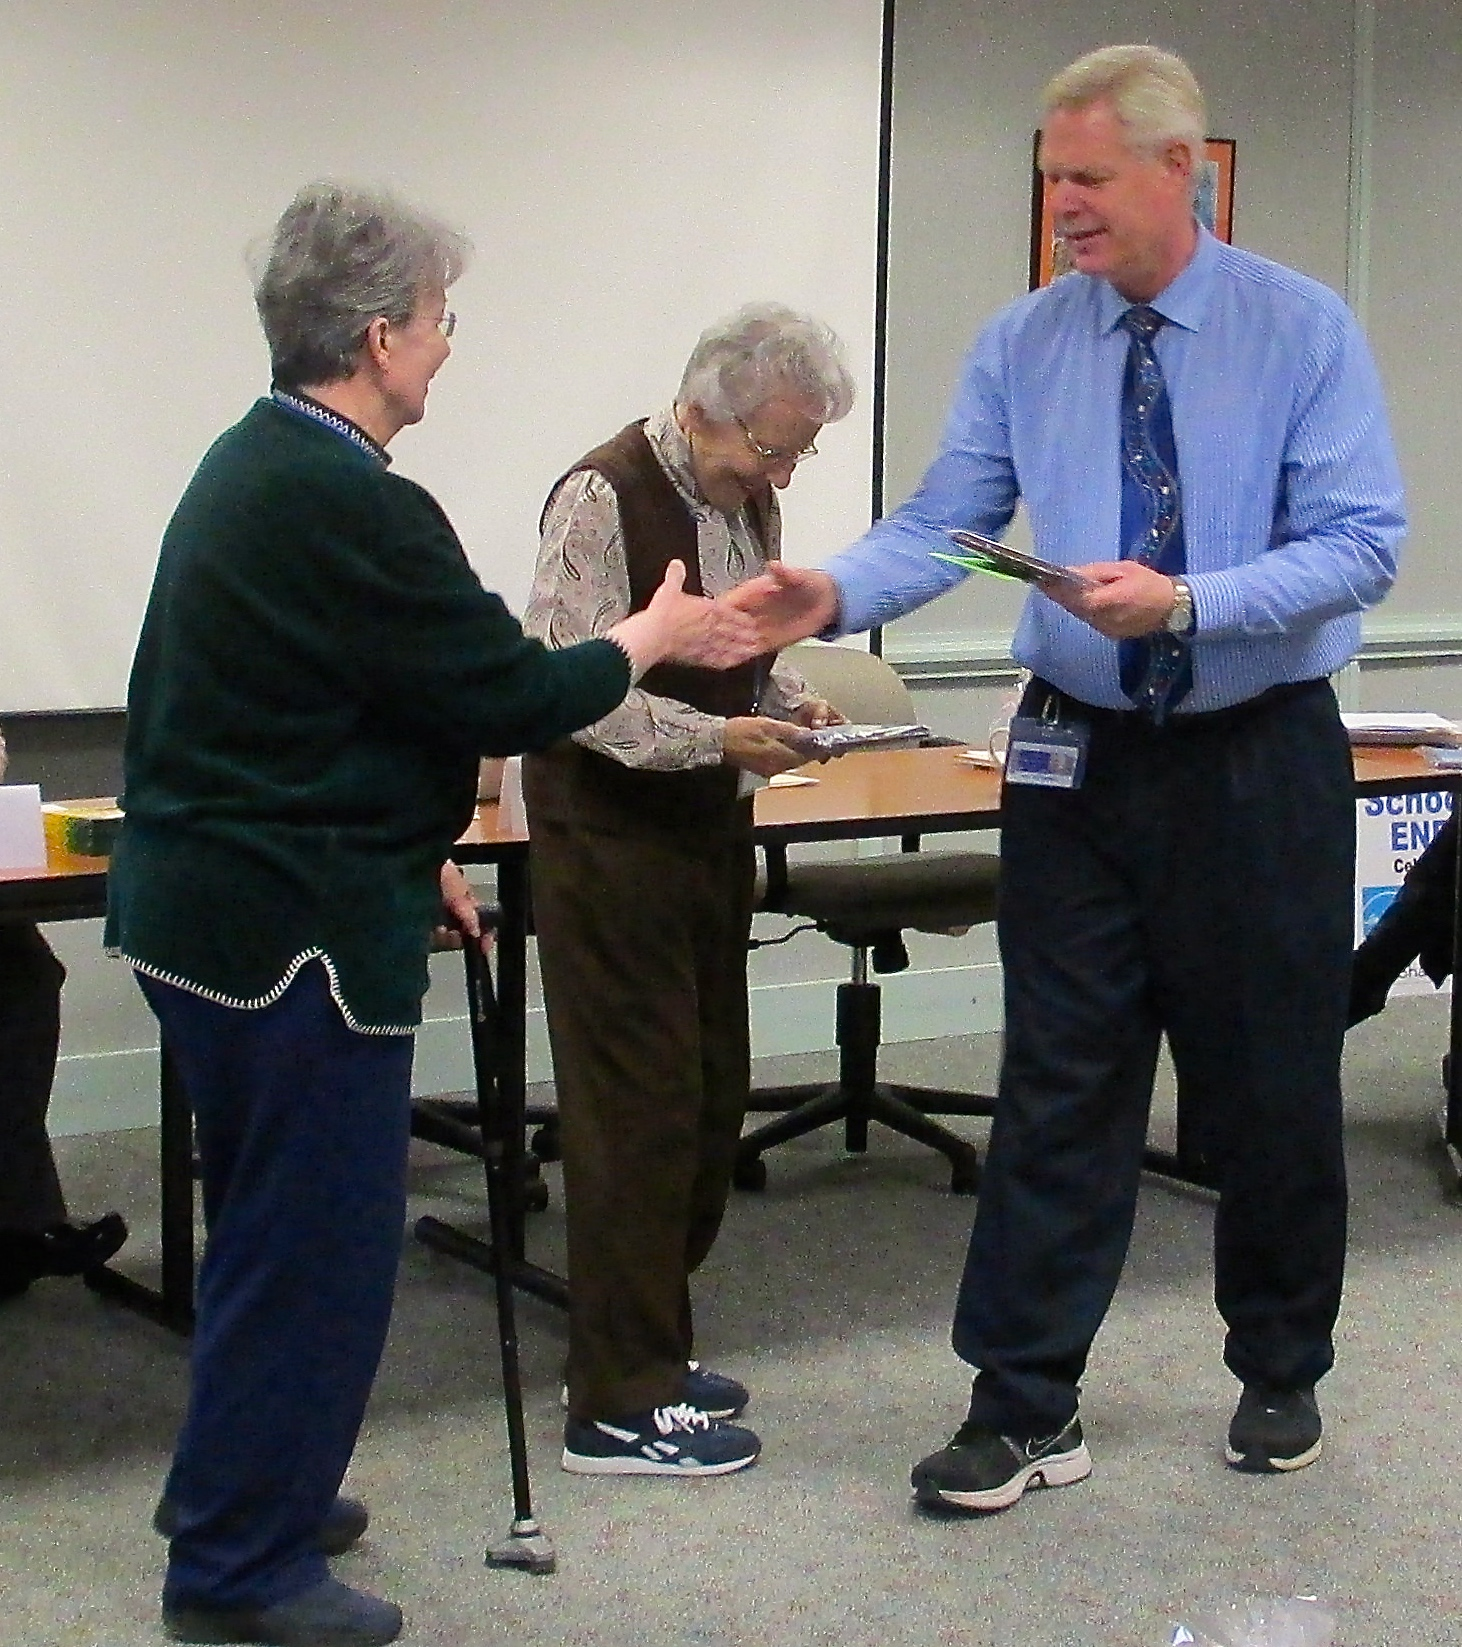 Lodi Elementary School volunteers receive their award! Pictured left-to-right: Judy Lichucki, Margot Myers & Lyle Hendrickson (Principal, Lodi Elementary School)